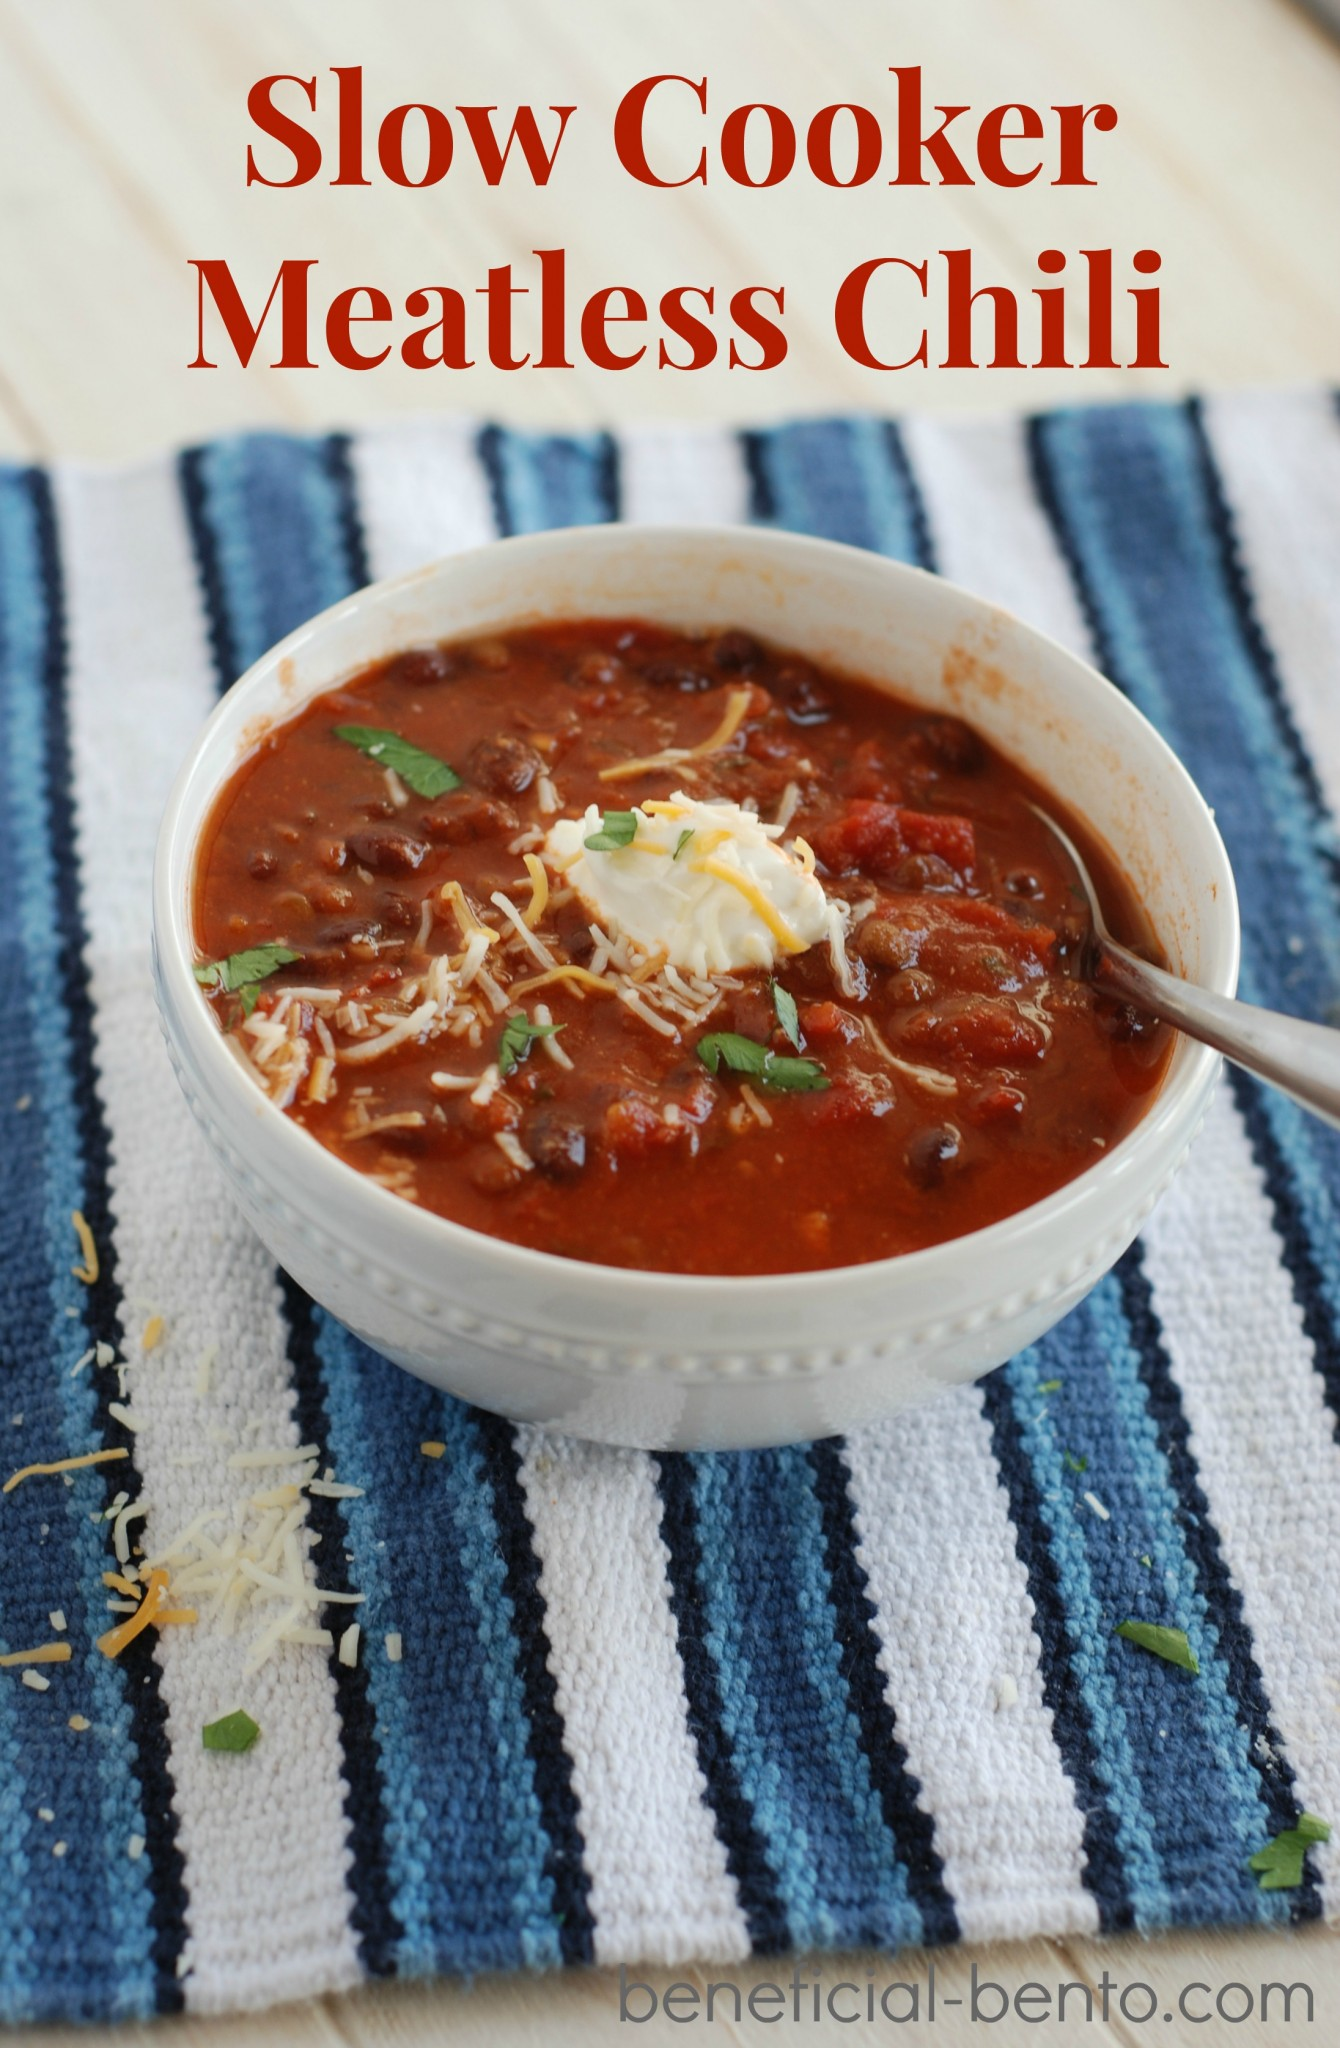 Slow Cooker Meatless Chili is cheap to make, and really easy! you can cook it on the stove top, or all day in the crockpot. It freezes well, and keeps well in the fridge, too.